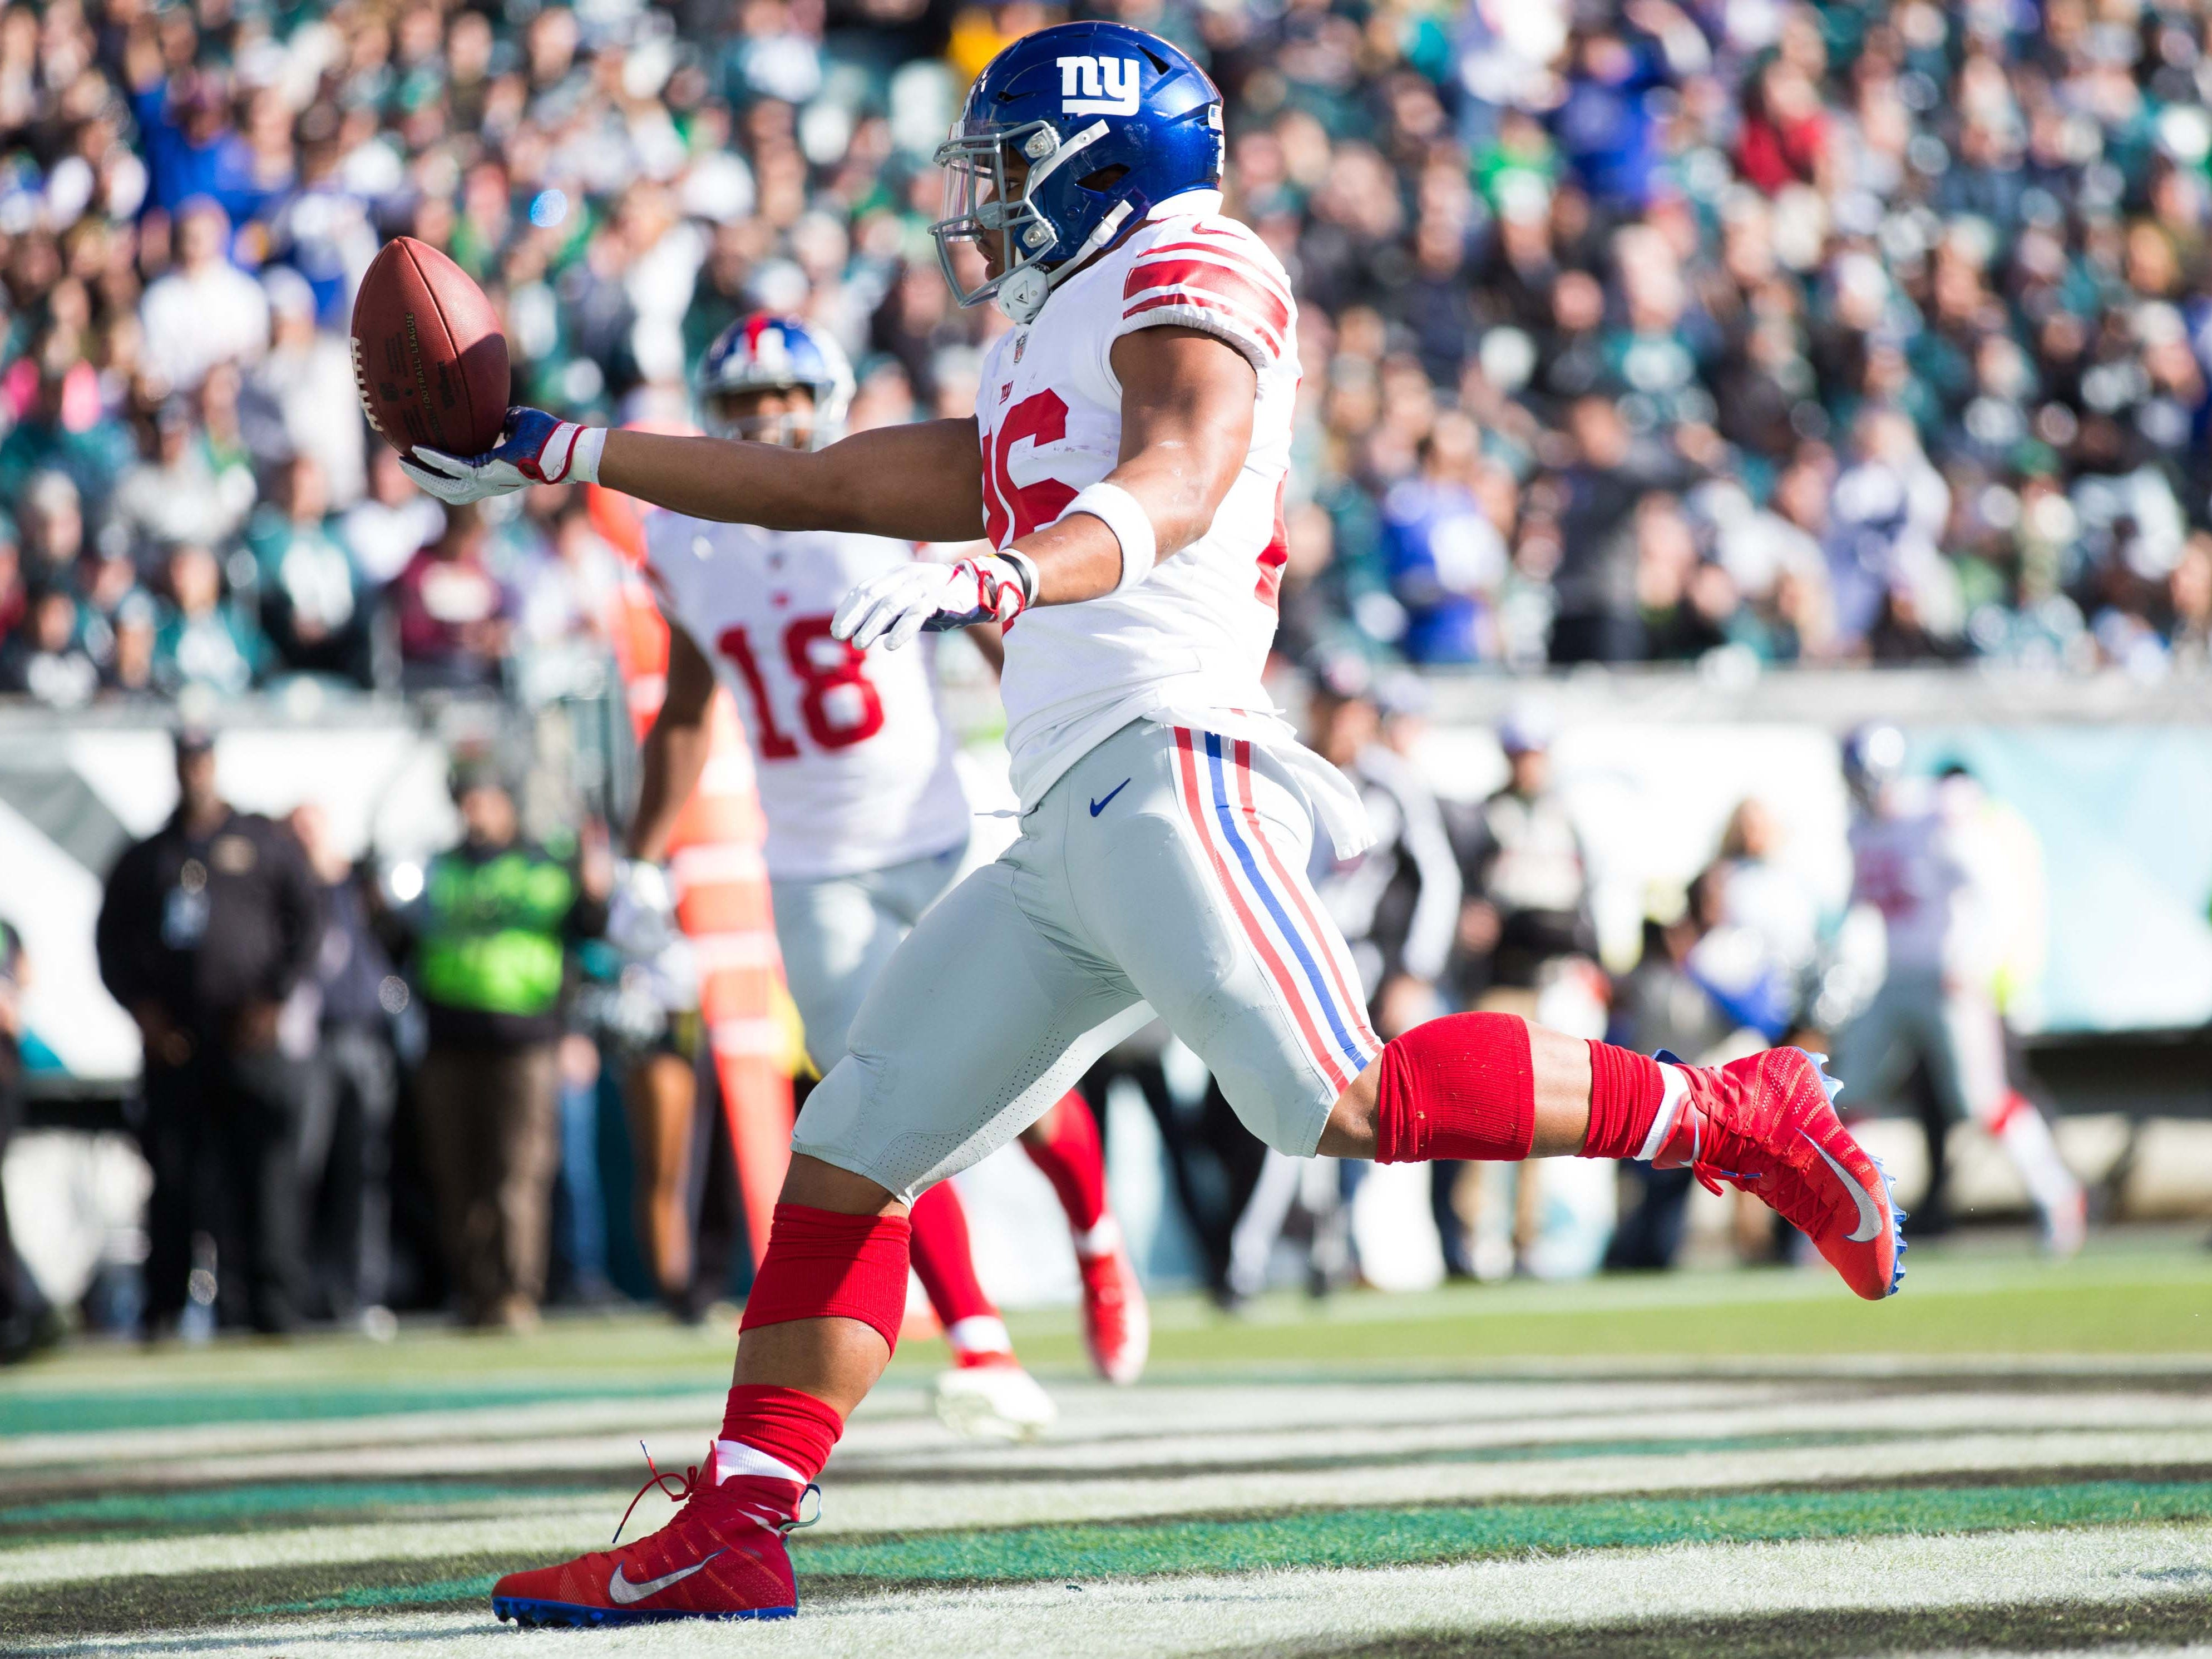 29. Giants (25): Amid OBJ, Eli handwringing, defensive deterioration has gone largely unnoticed. Fair to worry if Saquon Barkley's prime will be squandered.